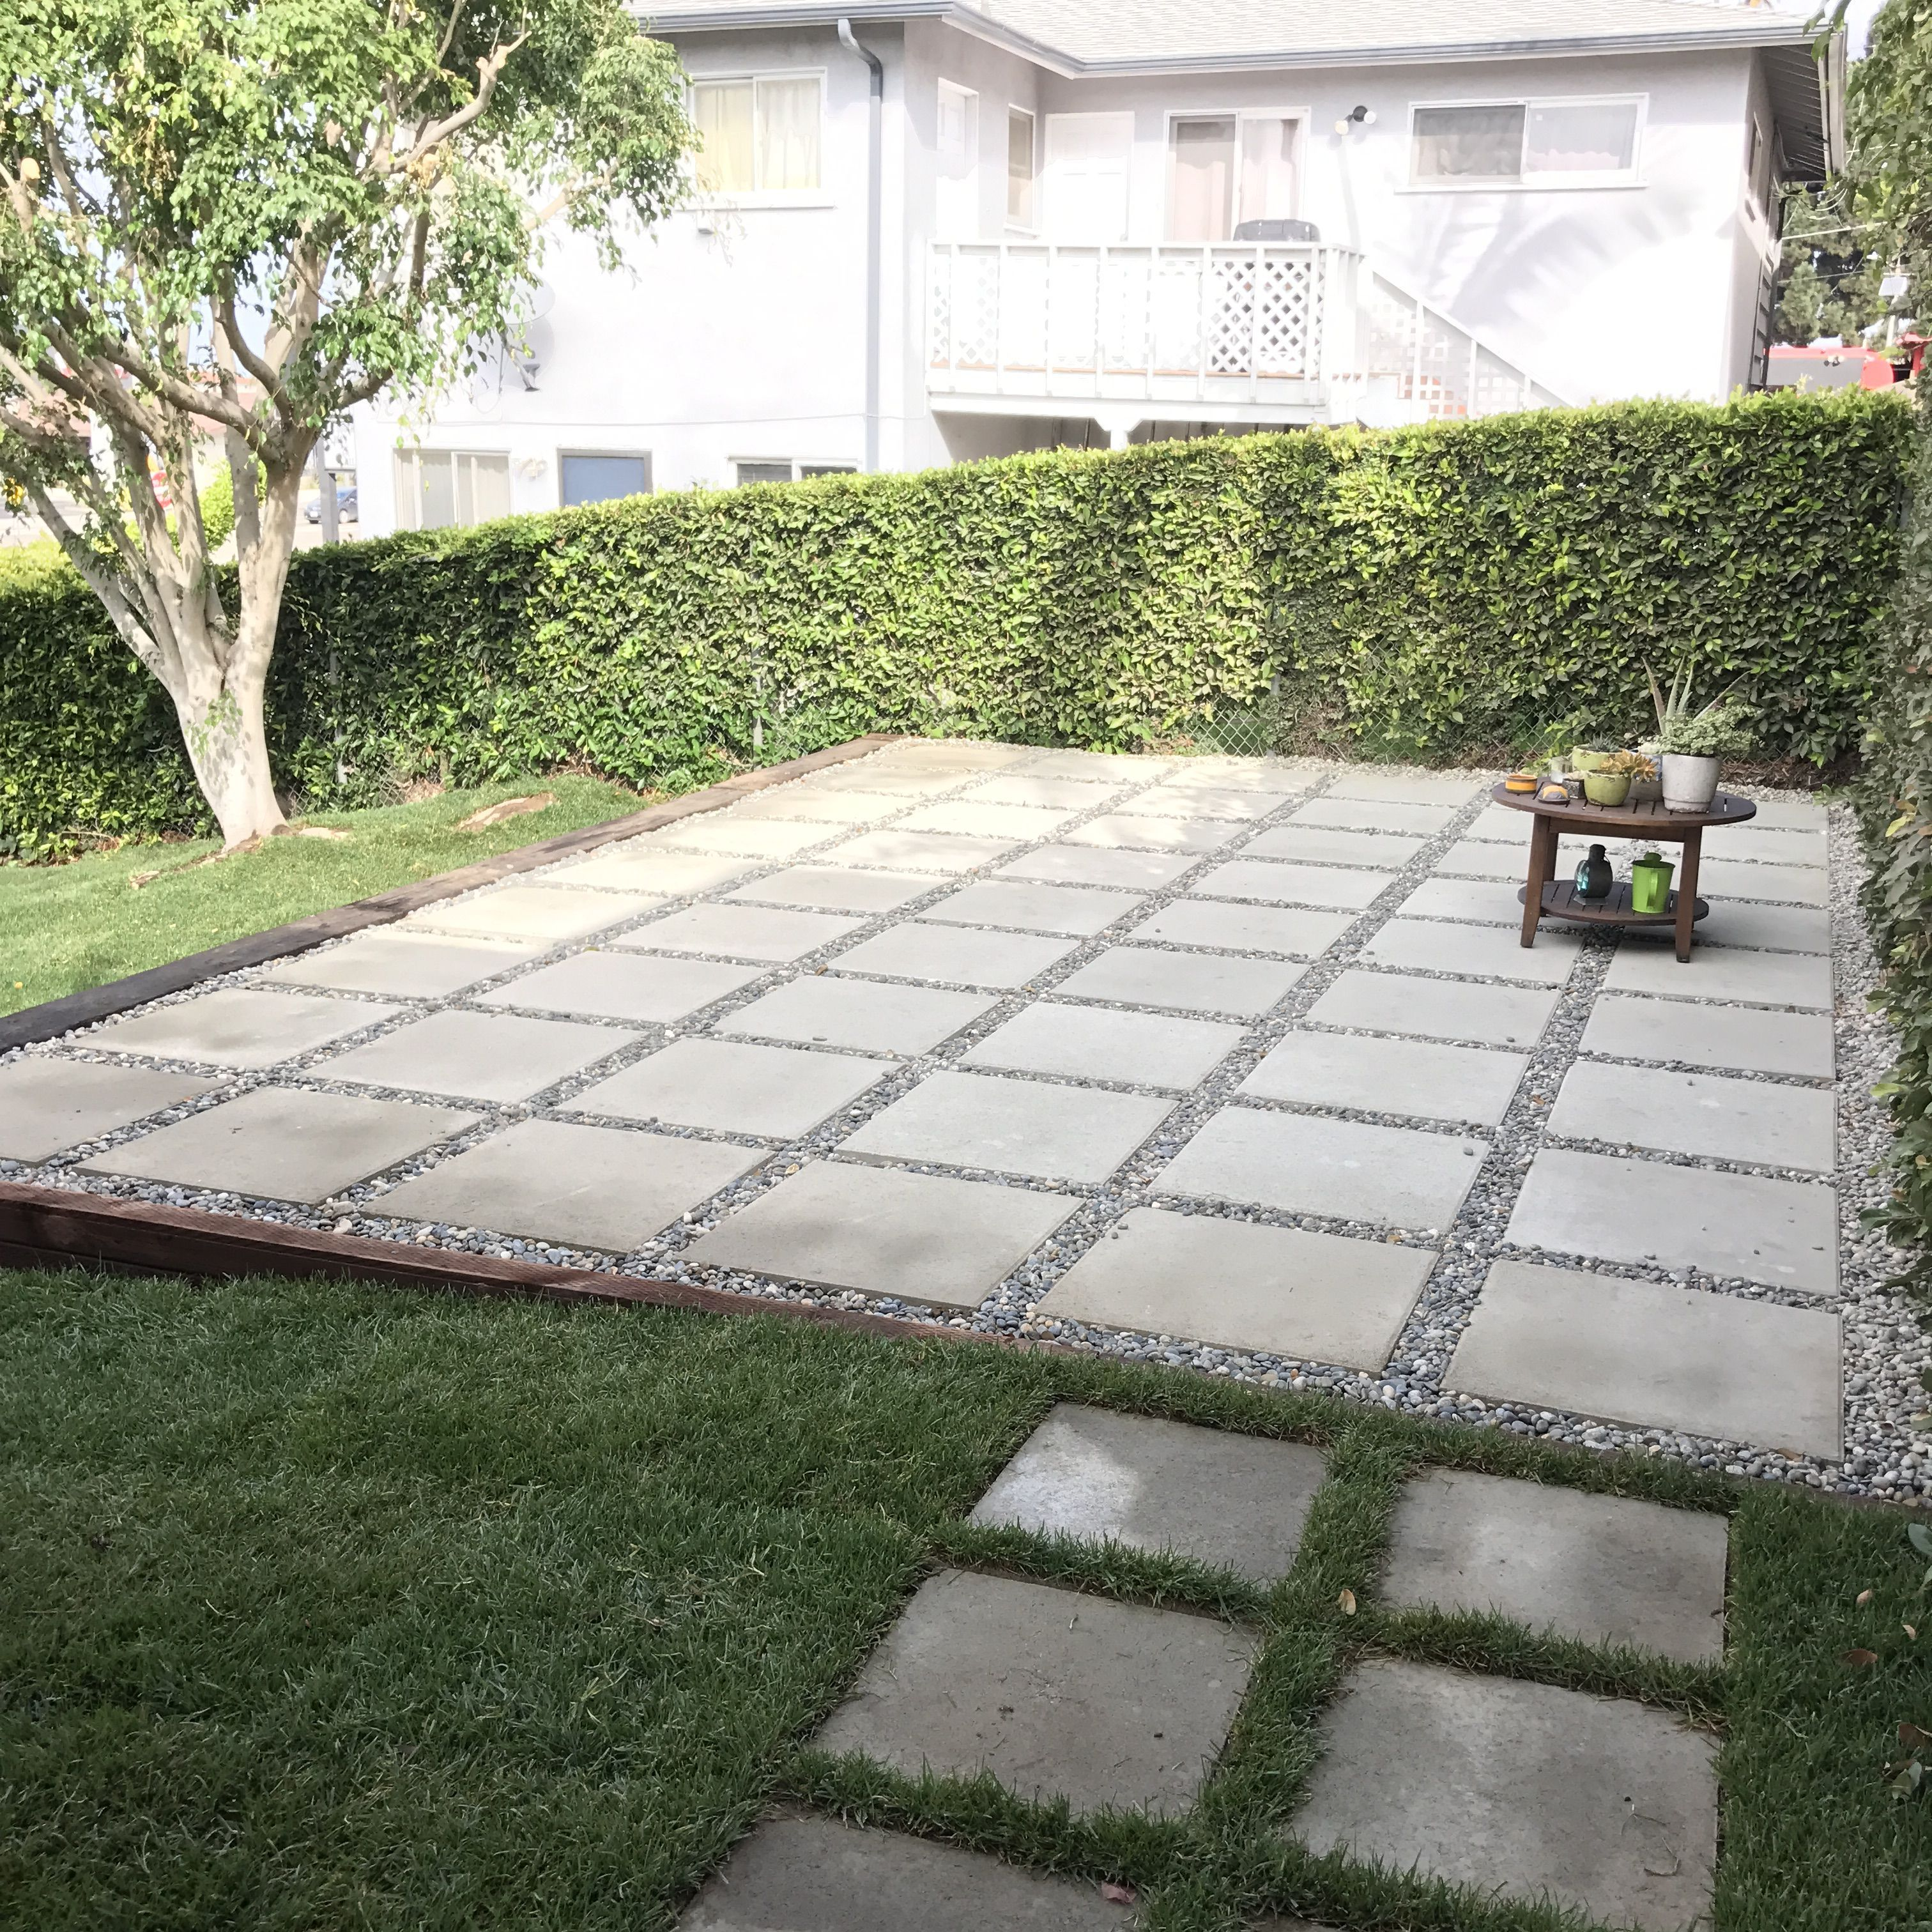 Large Pavers Used To Create Patio In Backyard. Quick And Easy Alternative  To Building A